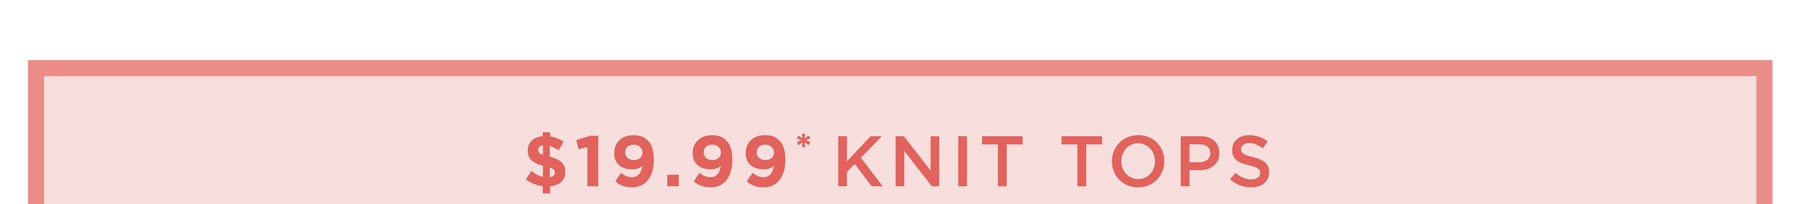 $19.99* SELECT KNIT TOPS - See Terms & Conditions for full details - prices as marked - SHOP NOW